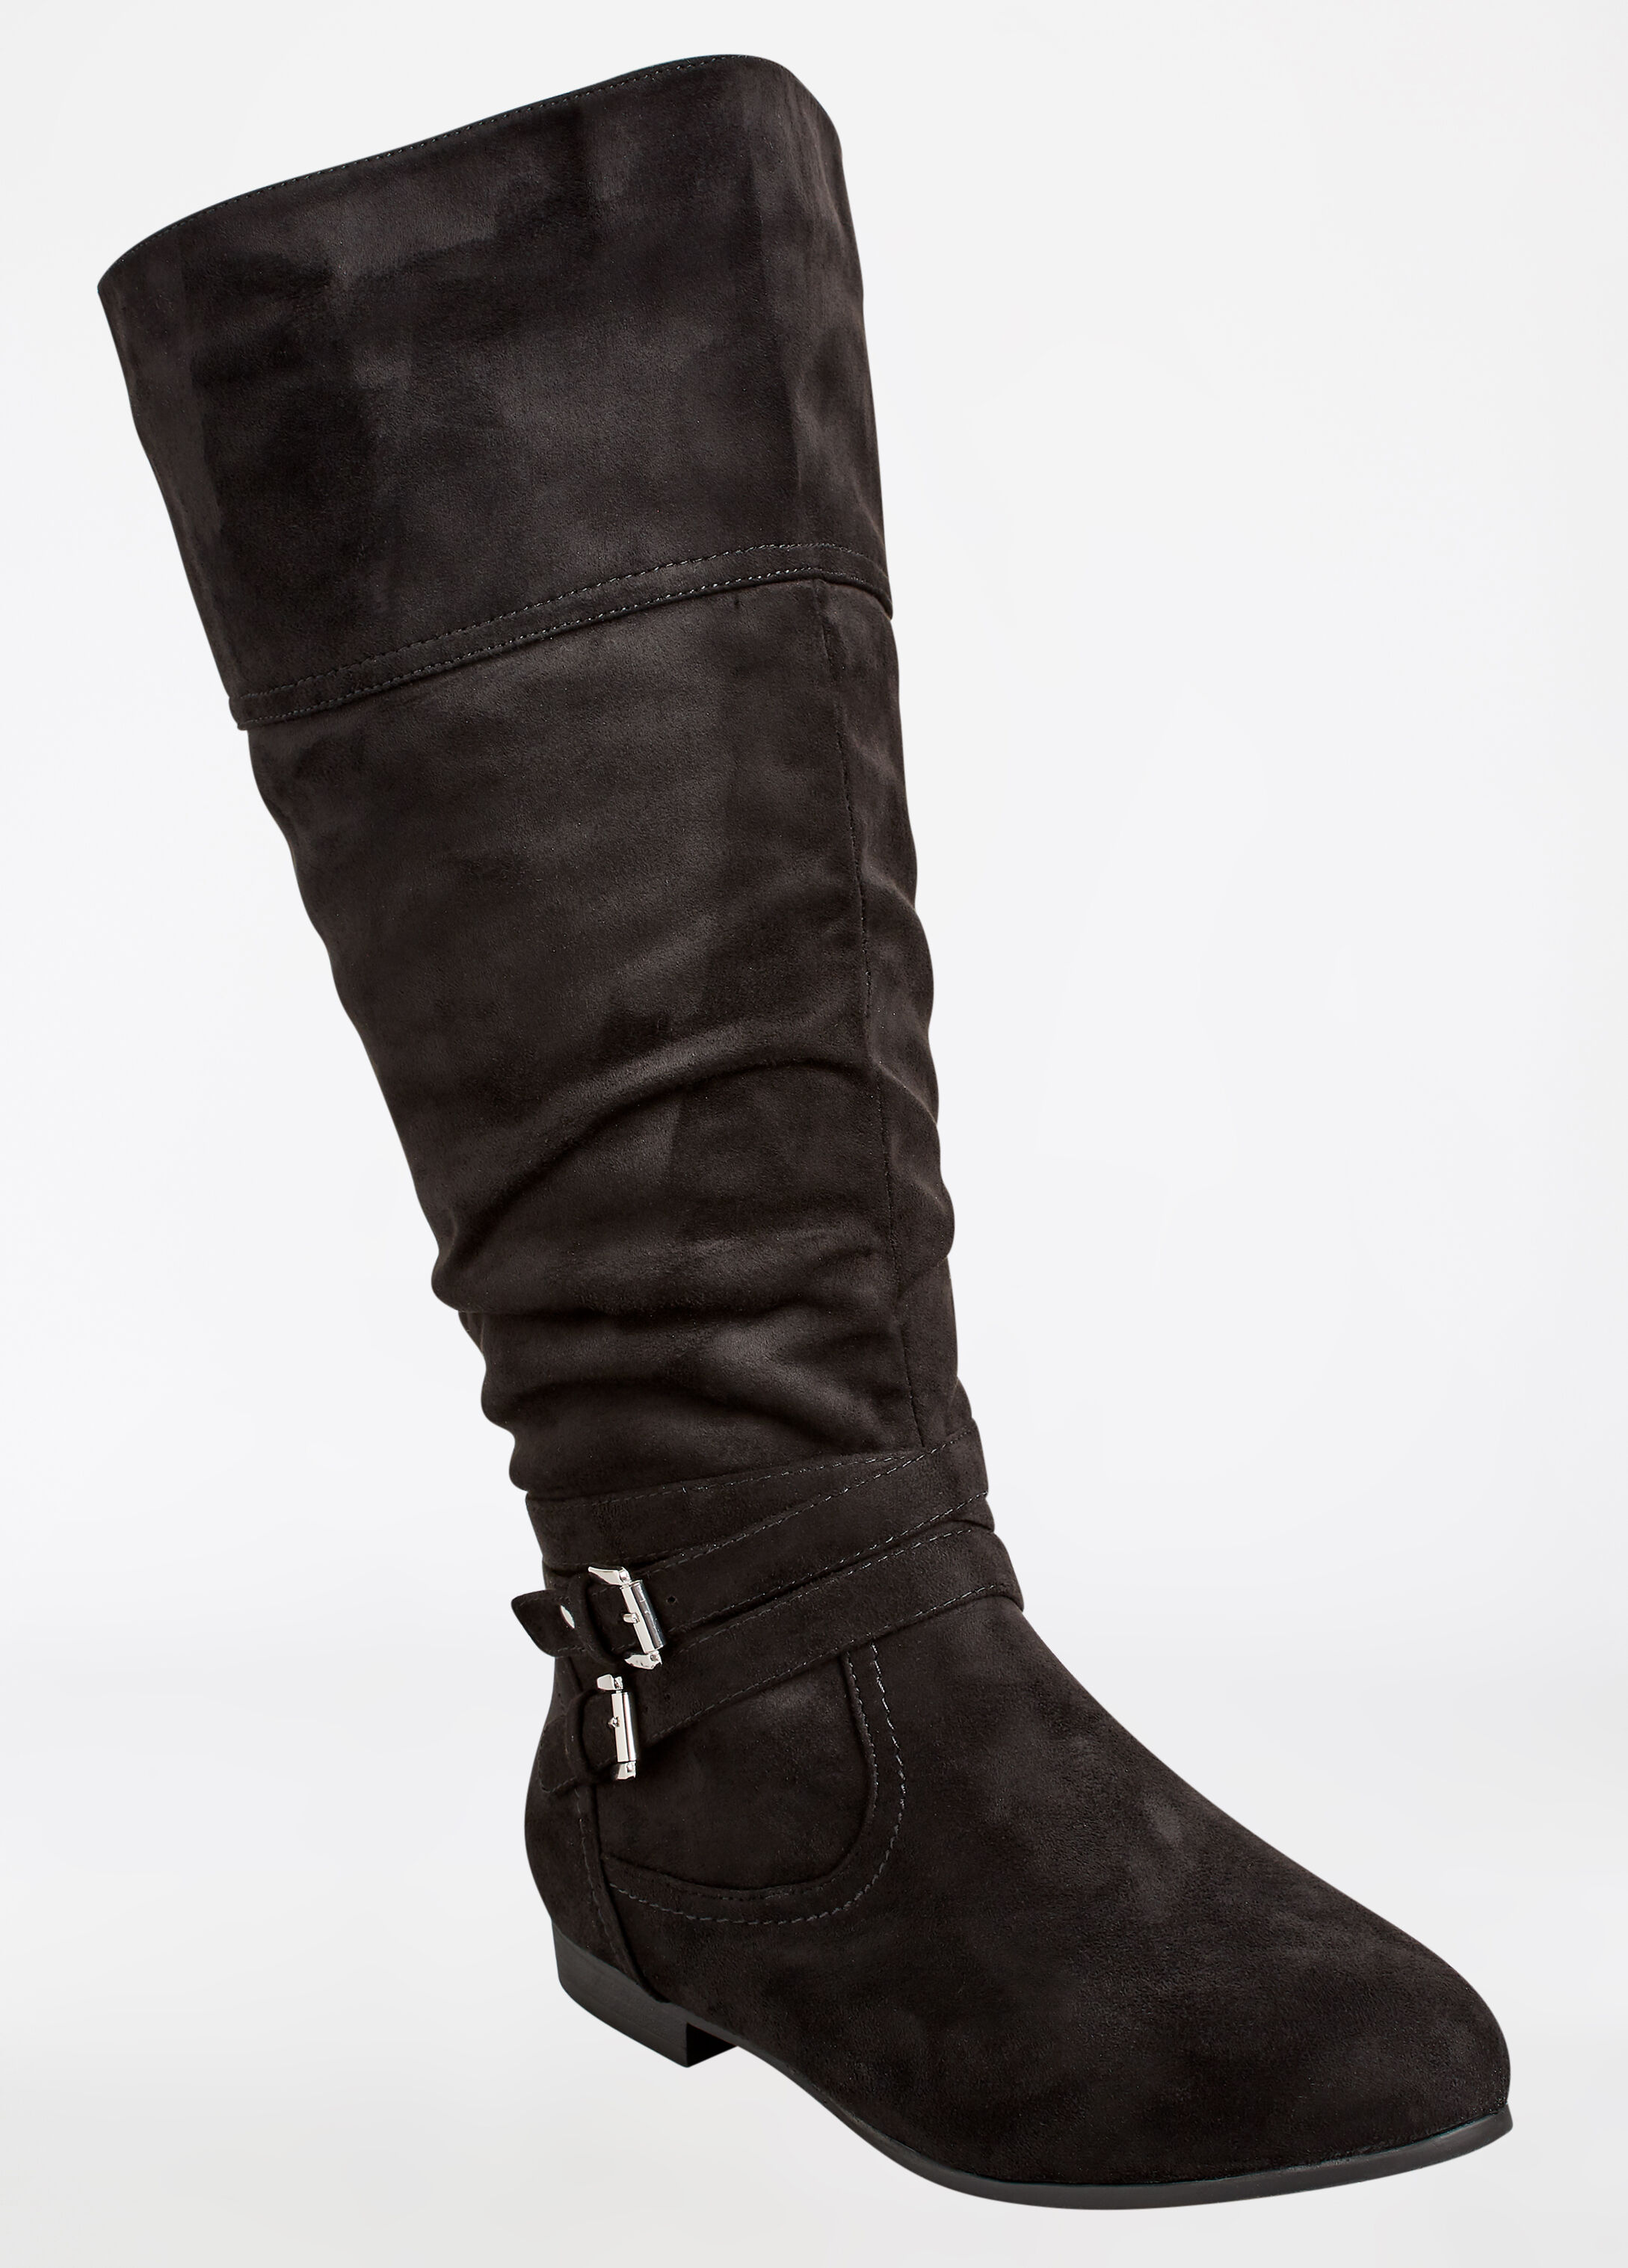 Faux Suede Buckle Side Boot - Extra Wide Width - Wide Calf